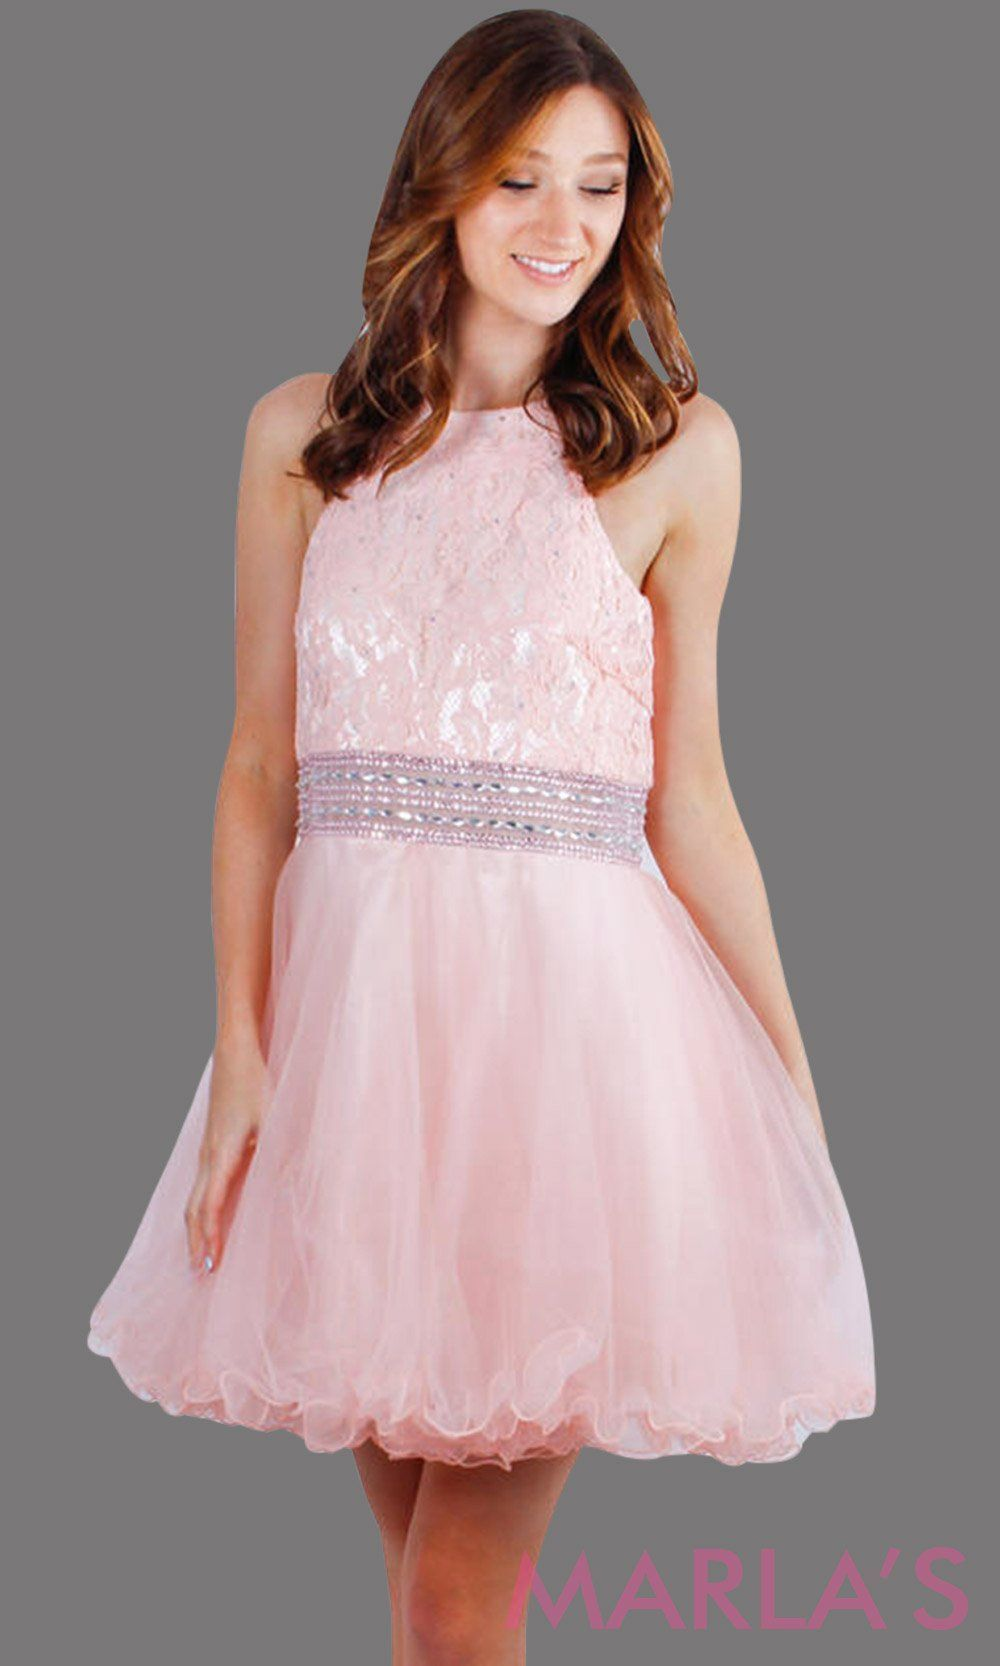 0ff32682245 Short blush pink high neck graduation dress with beaded waist. It has puffy  tulle skirt. Perfect for grade 8 grad